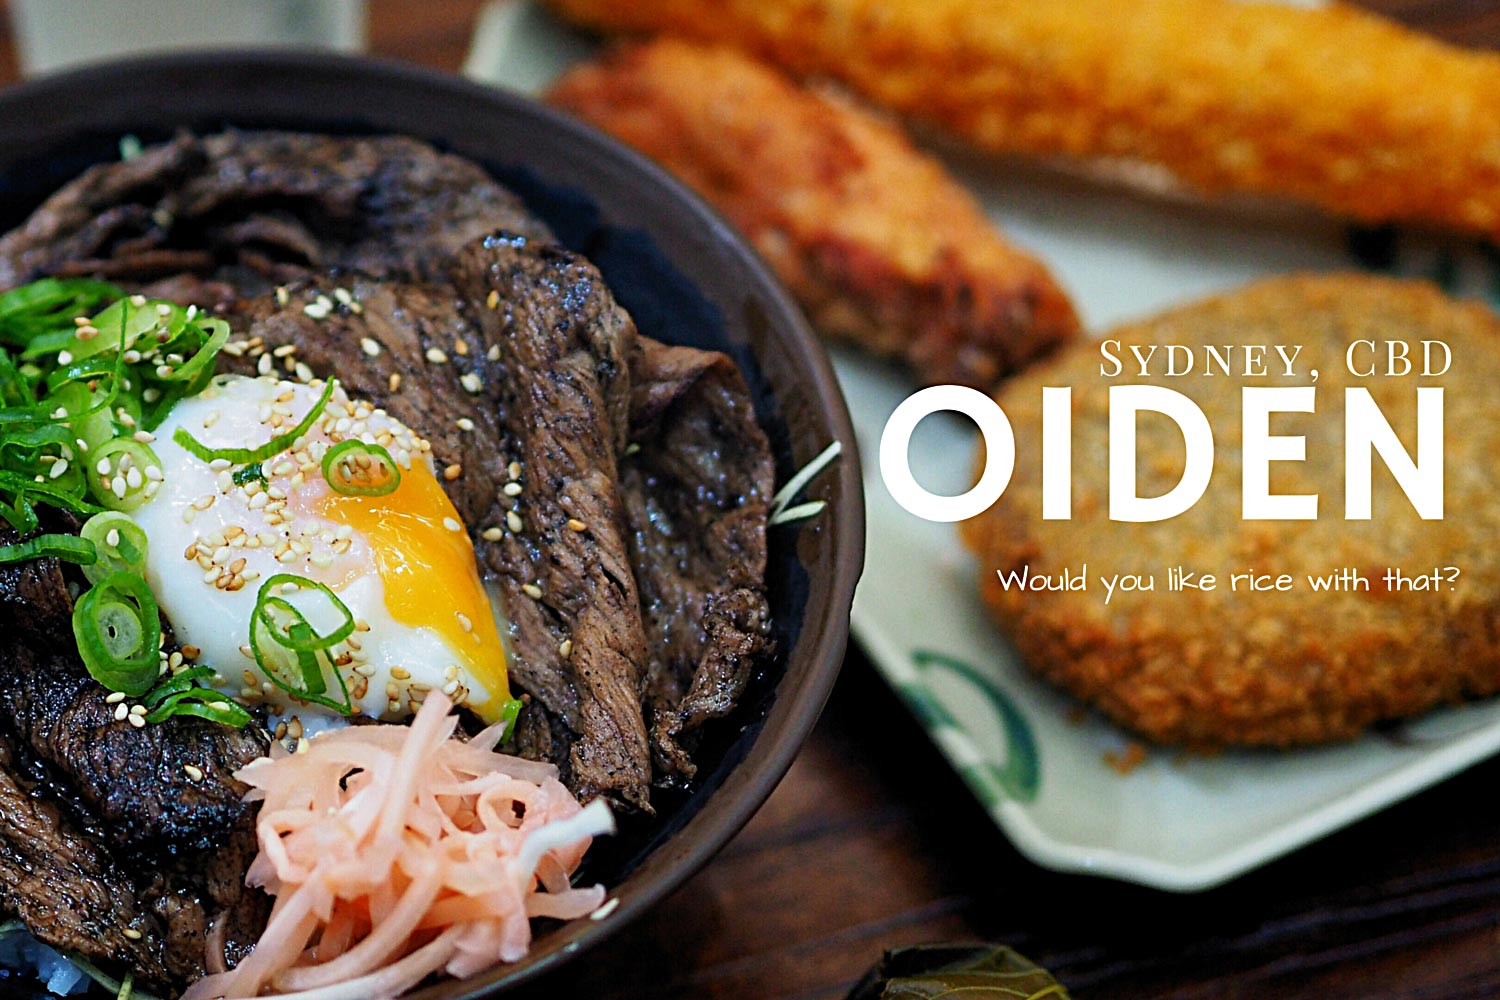 Review of Oiden, Sydney CBD